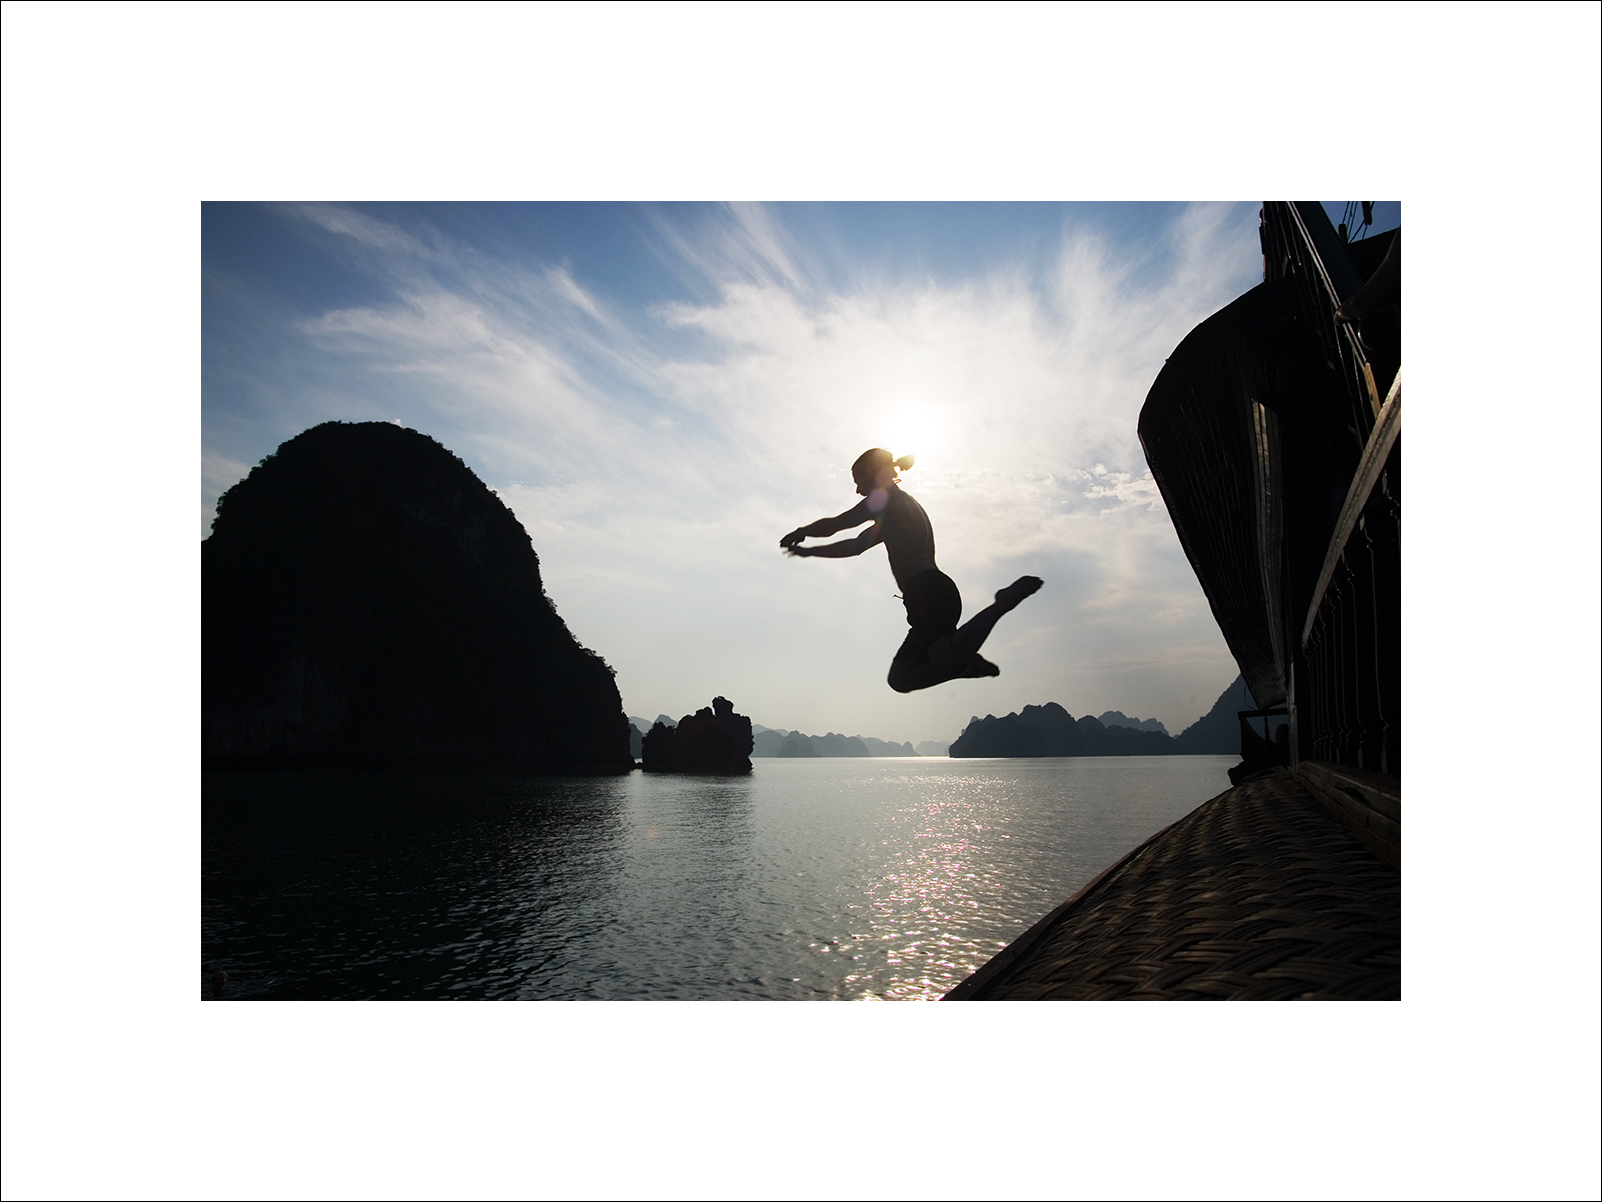 Tourist jumping from a junk in Halong Bay